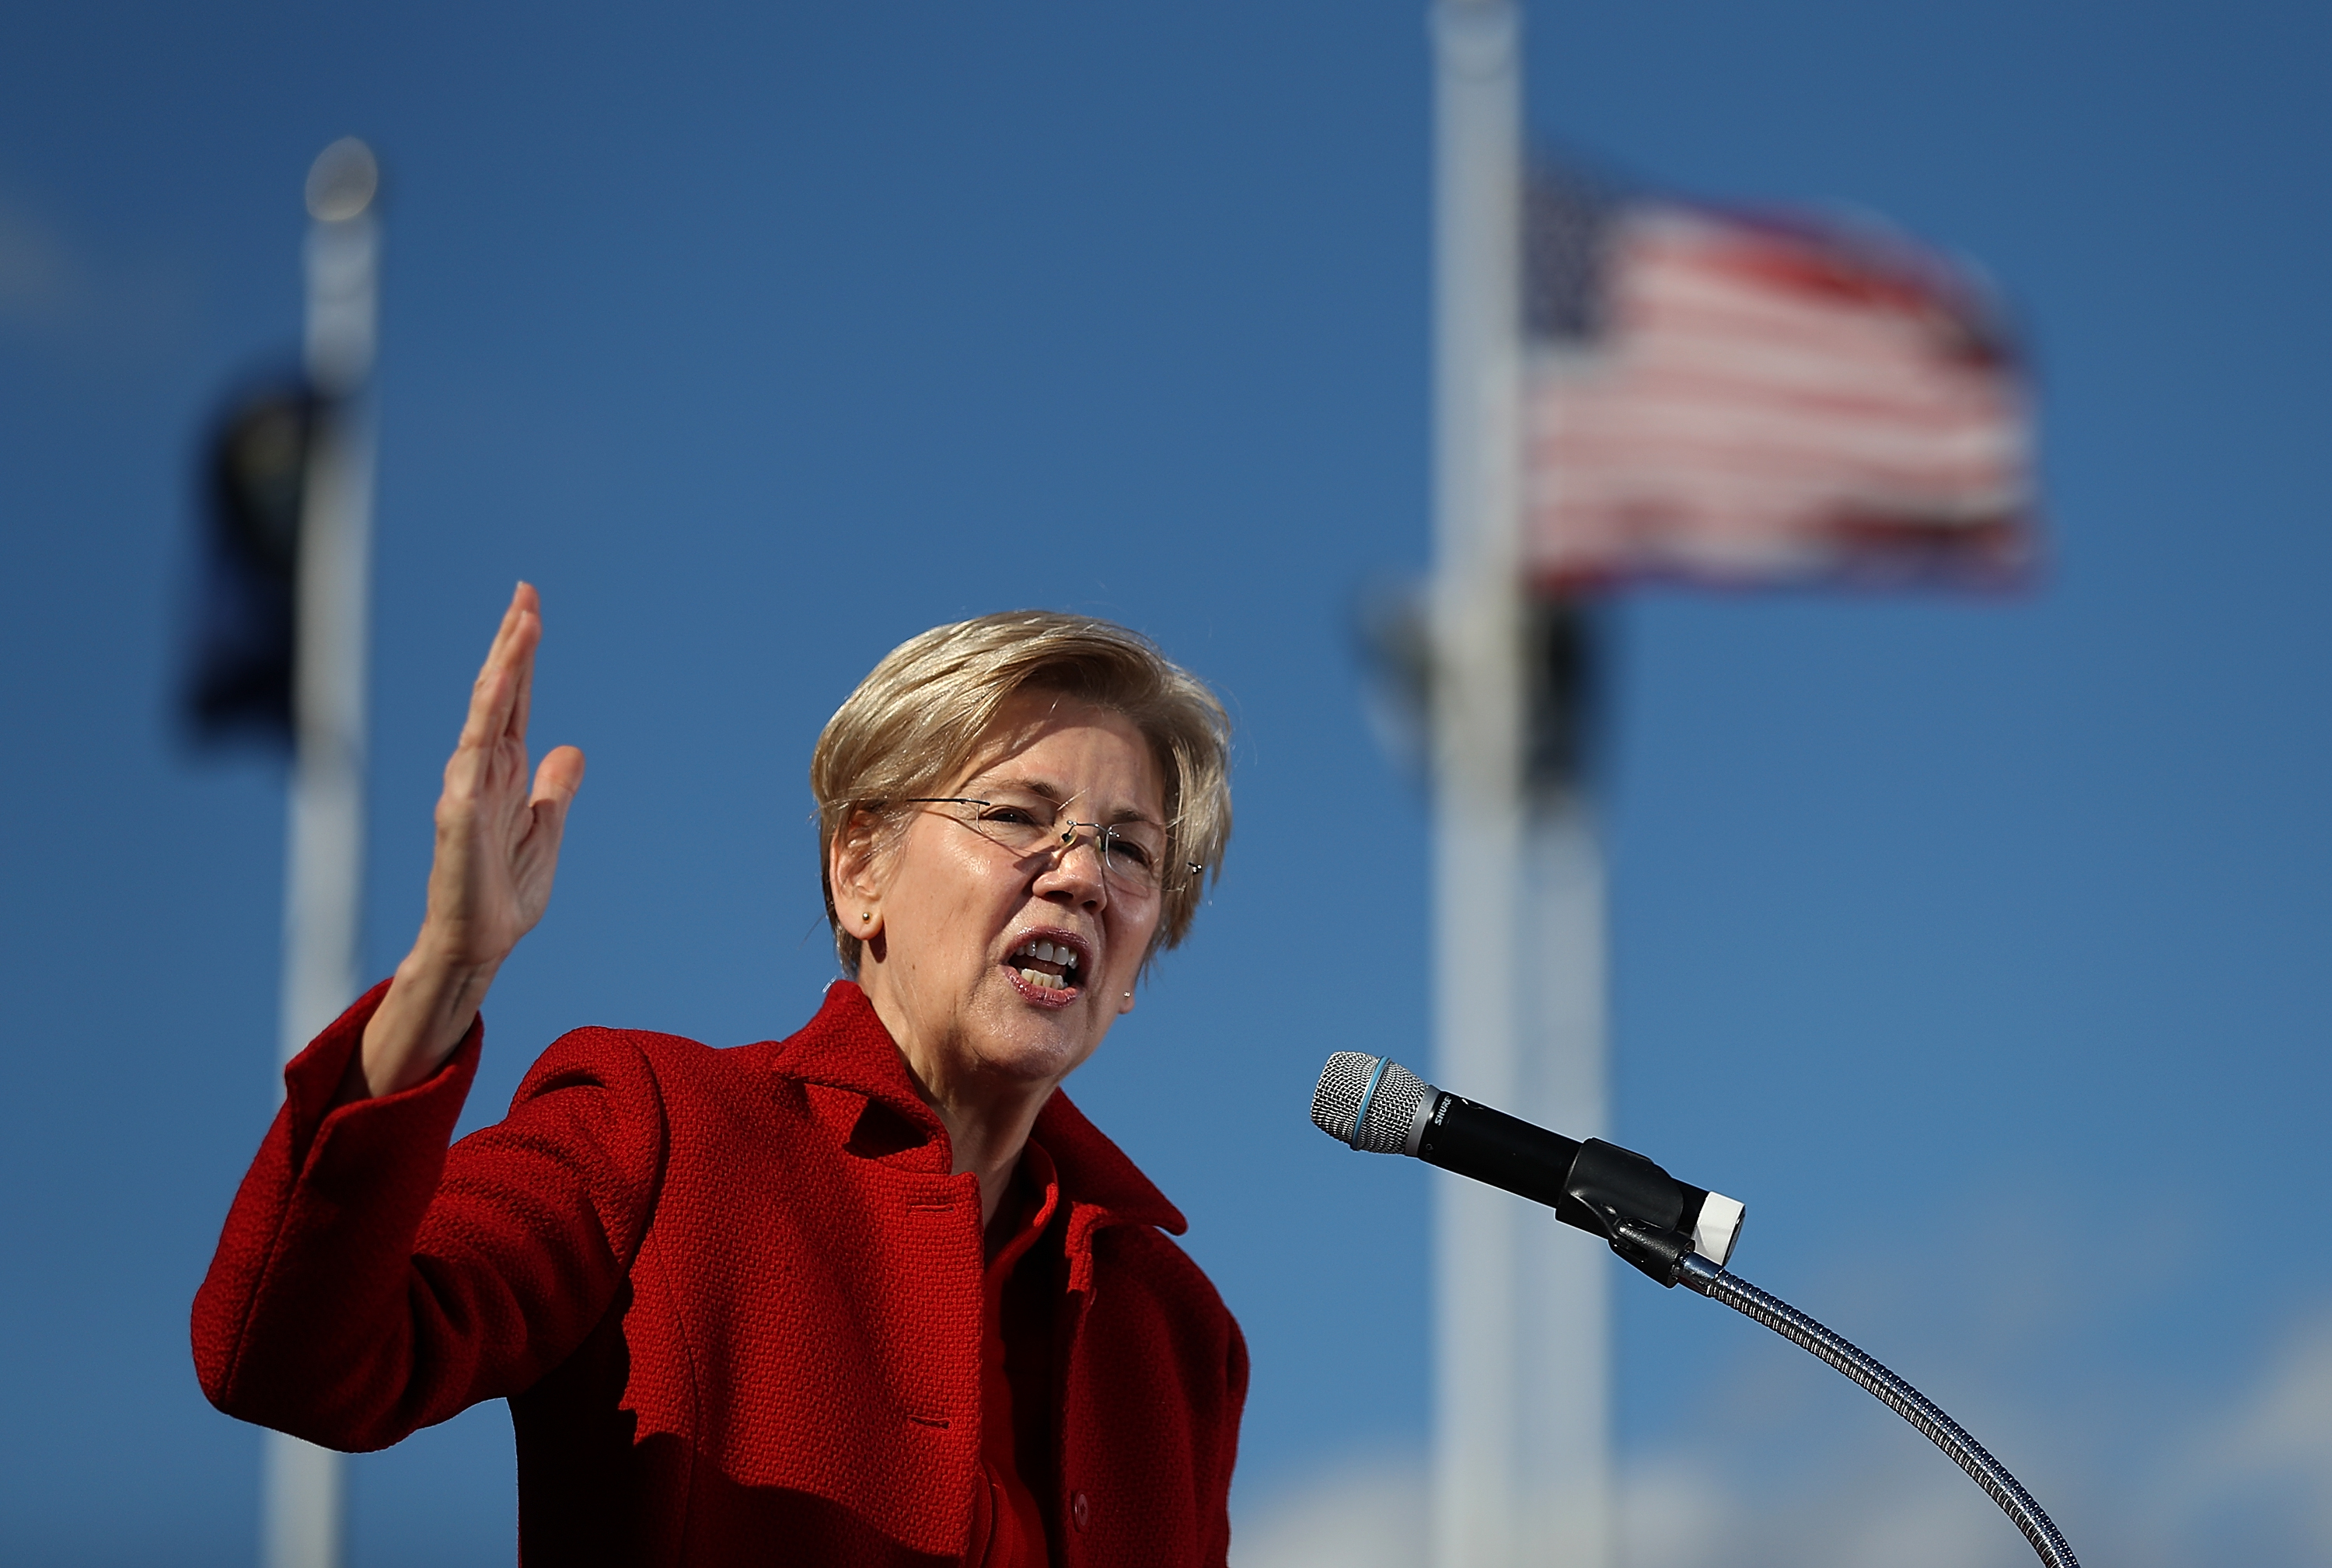 Sen. Elizabeth Warren speaks during a campaign rally with democratic presidential nominee former Secretary of State Hillary Clinton at St Saint Anselm College on Oct. 24, 2016 in Manchester, New Hampshire.